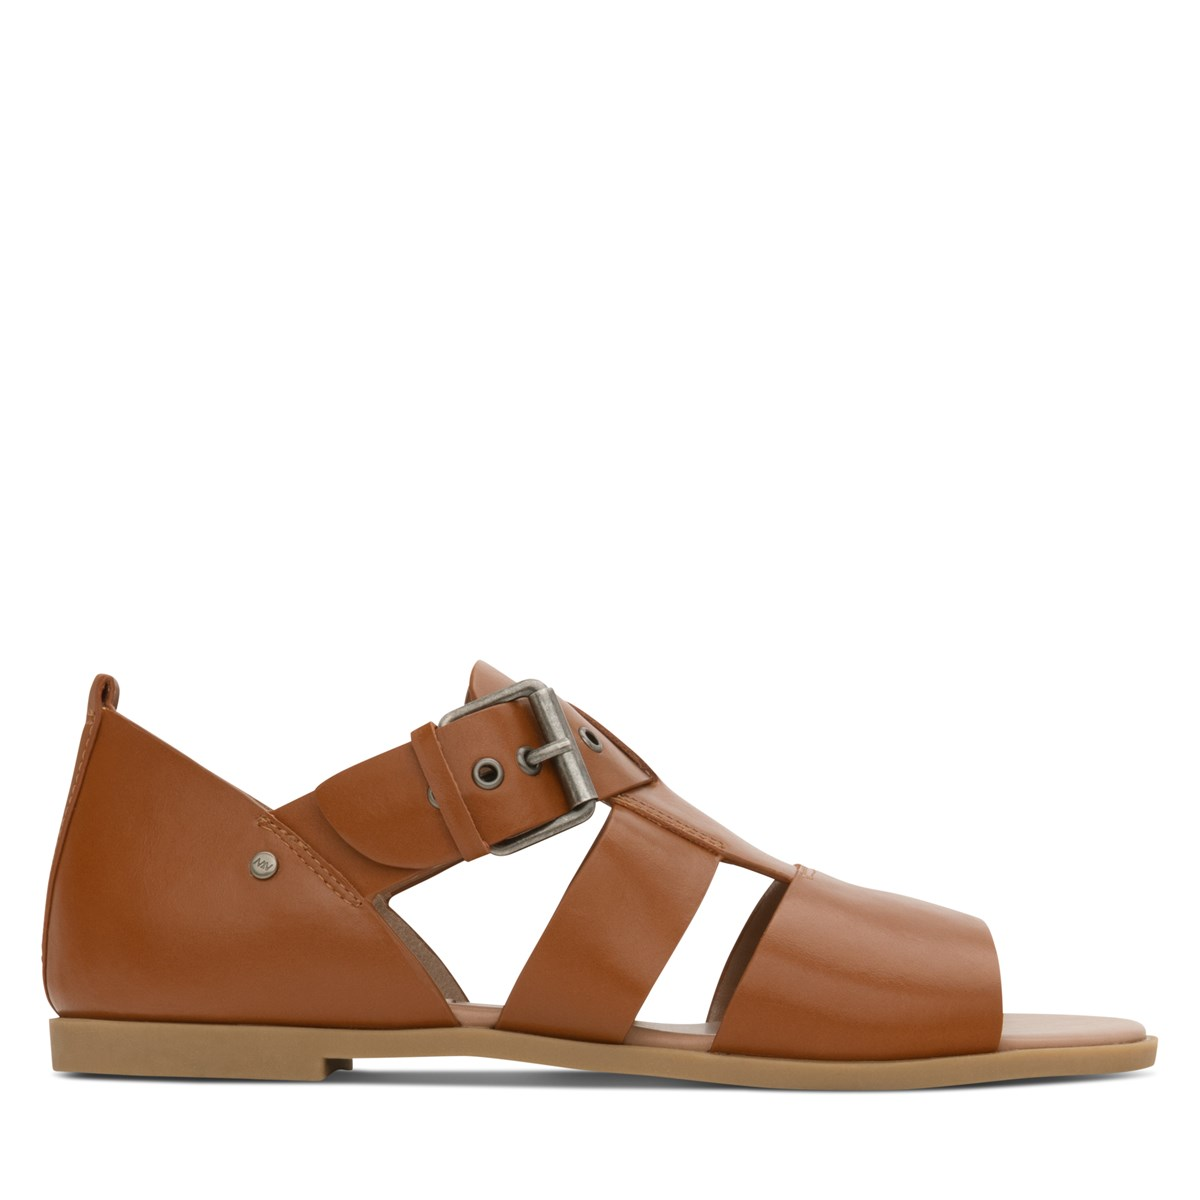 Women's Eboni Sandals in Chili